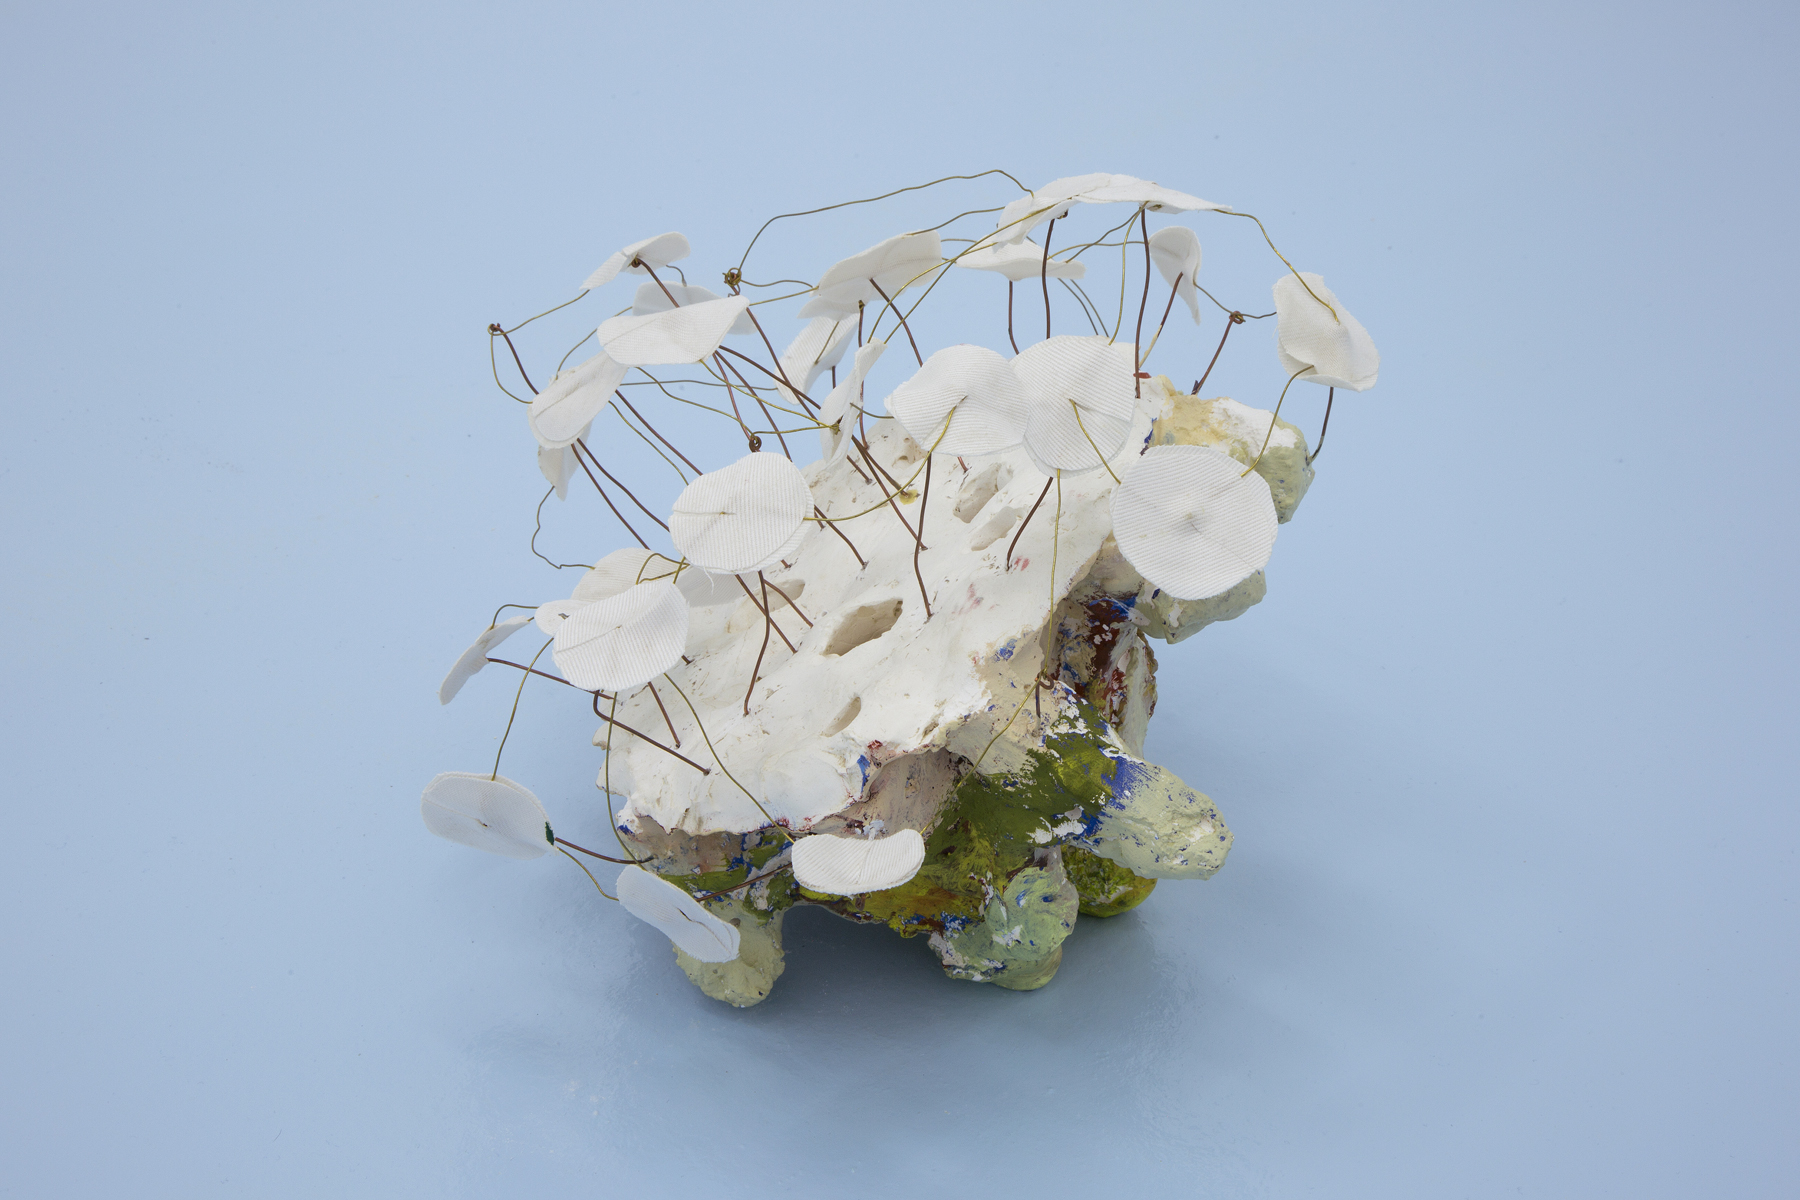 Miho Dohi, Buttai 24, 2013.  Plaster, copper, cloth and acrylic, h20 x w25 x d25 cm (7.87 x 9.84 x 9.84 in.)